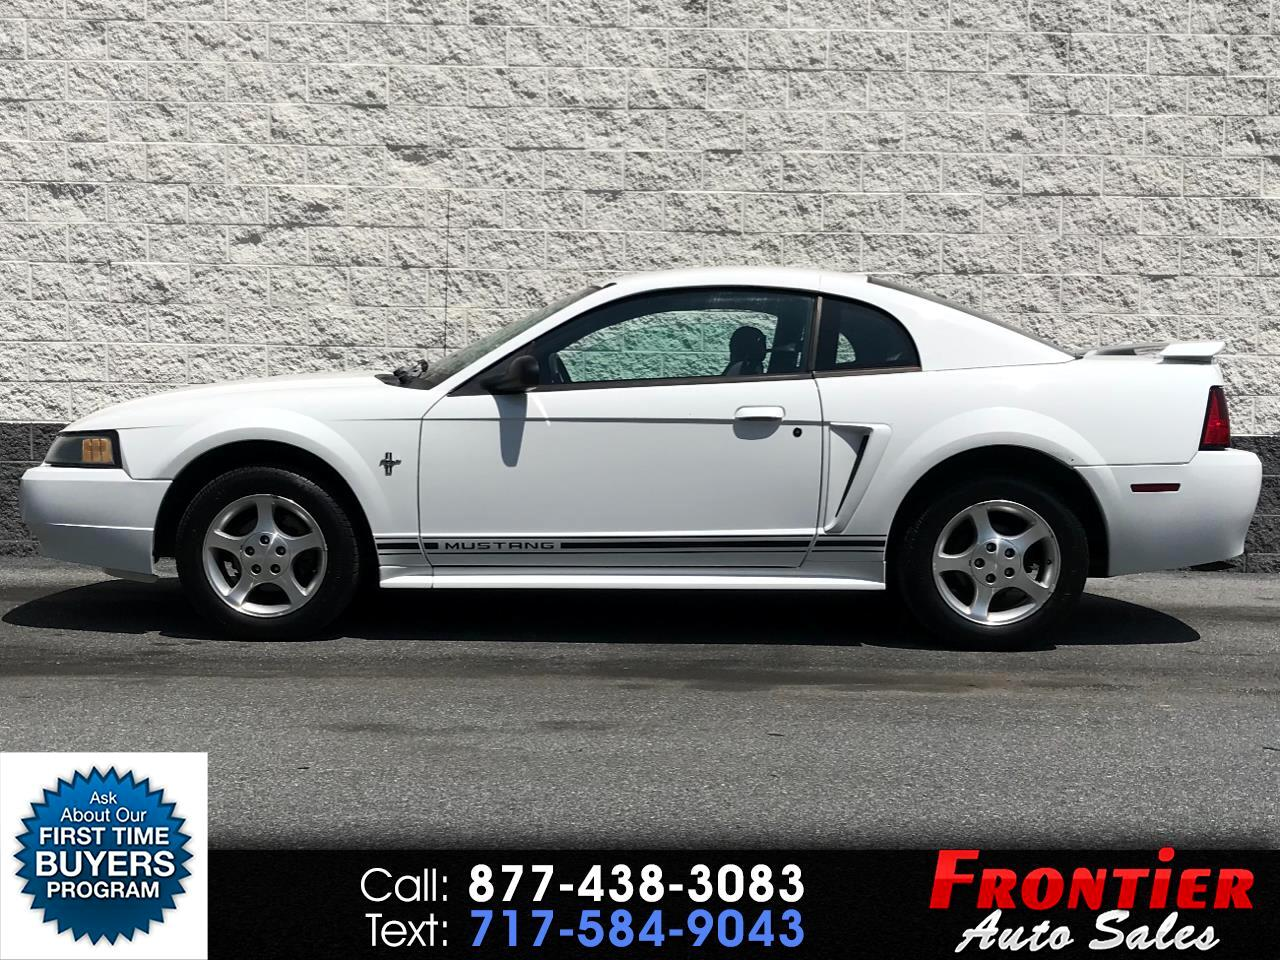 2001 Ford Mustang 2dr Coupe